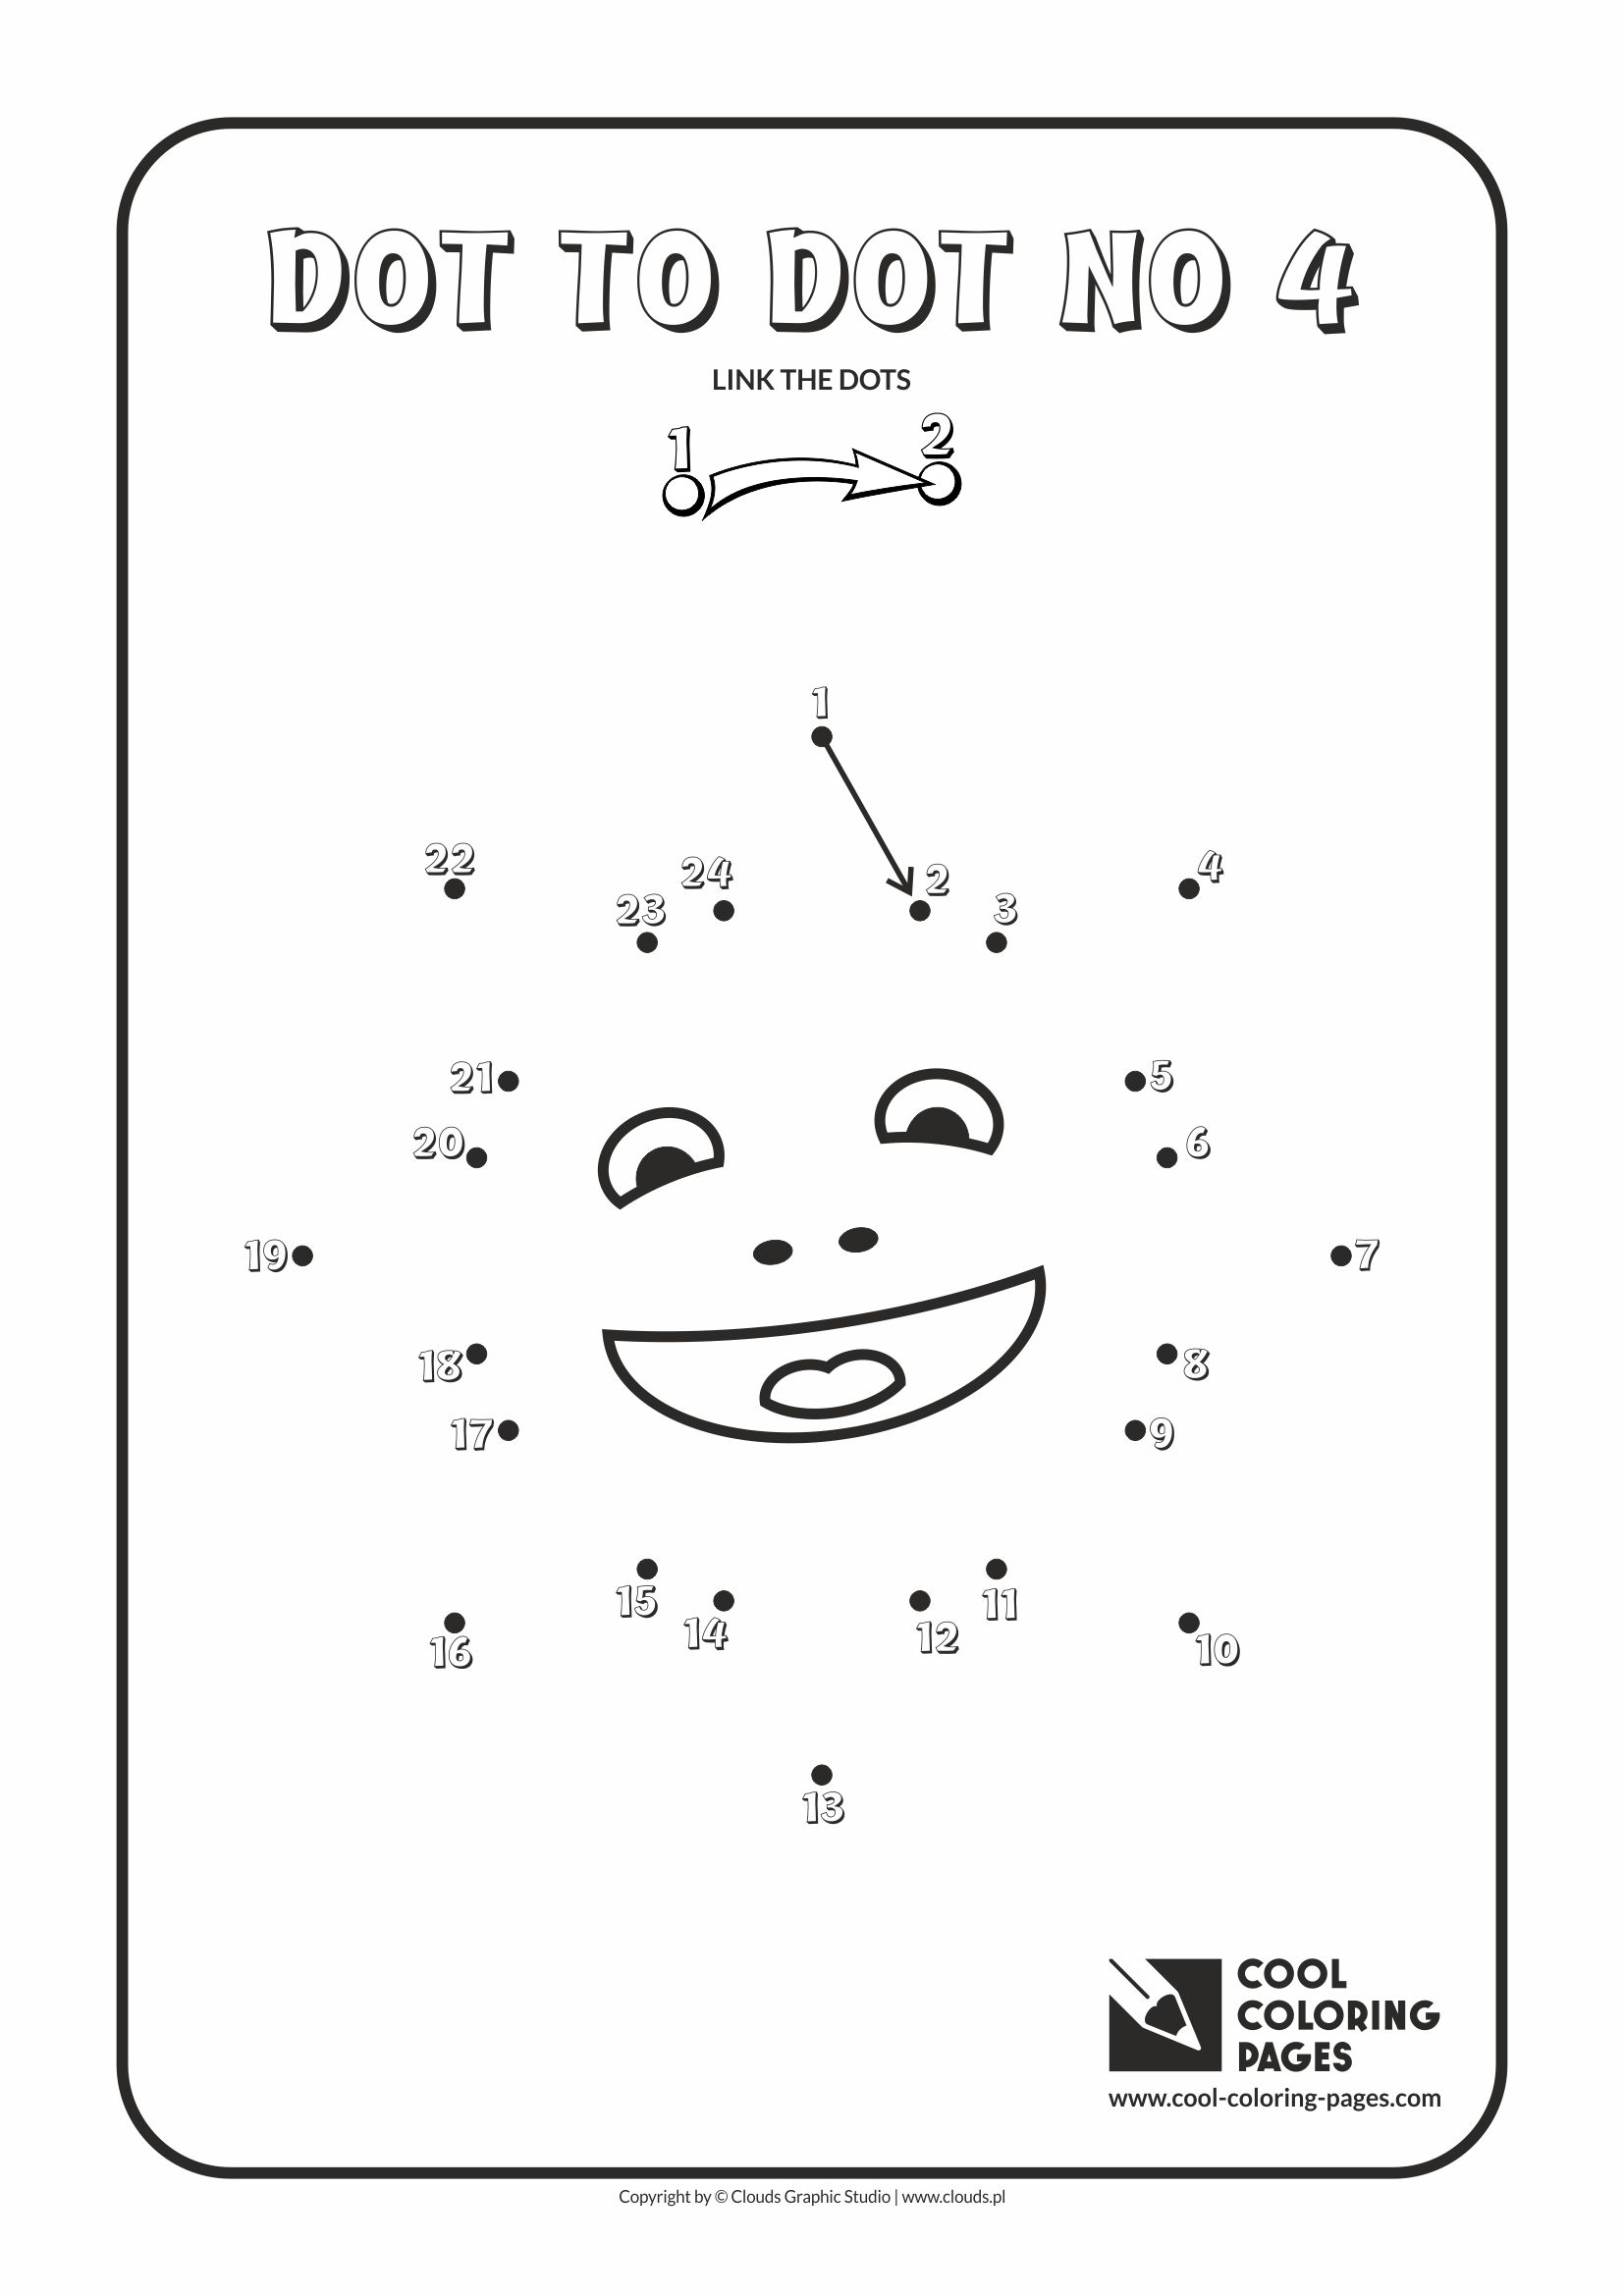 Cool Coloring Pages - Dot to dot / Dot to dot no 4